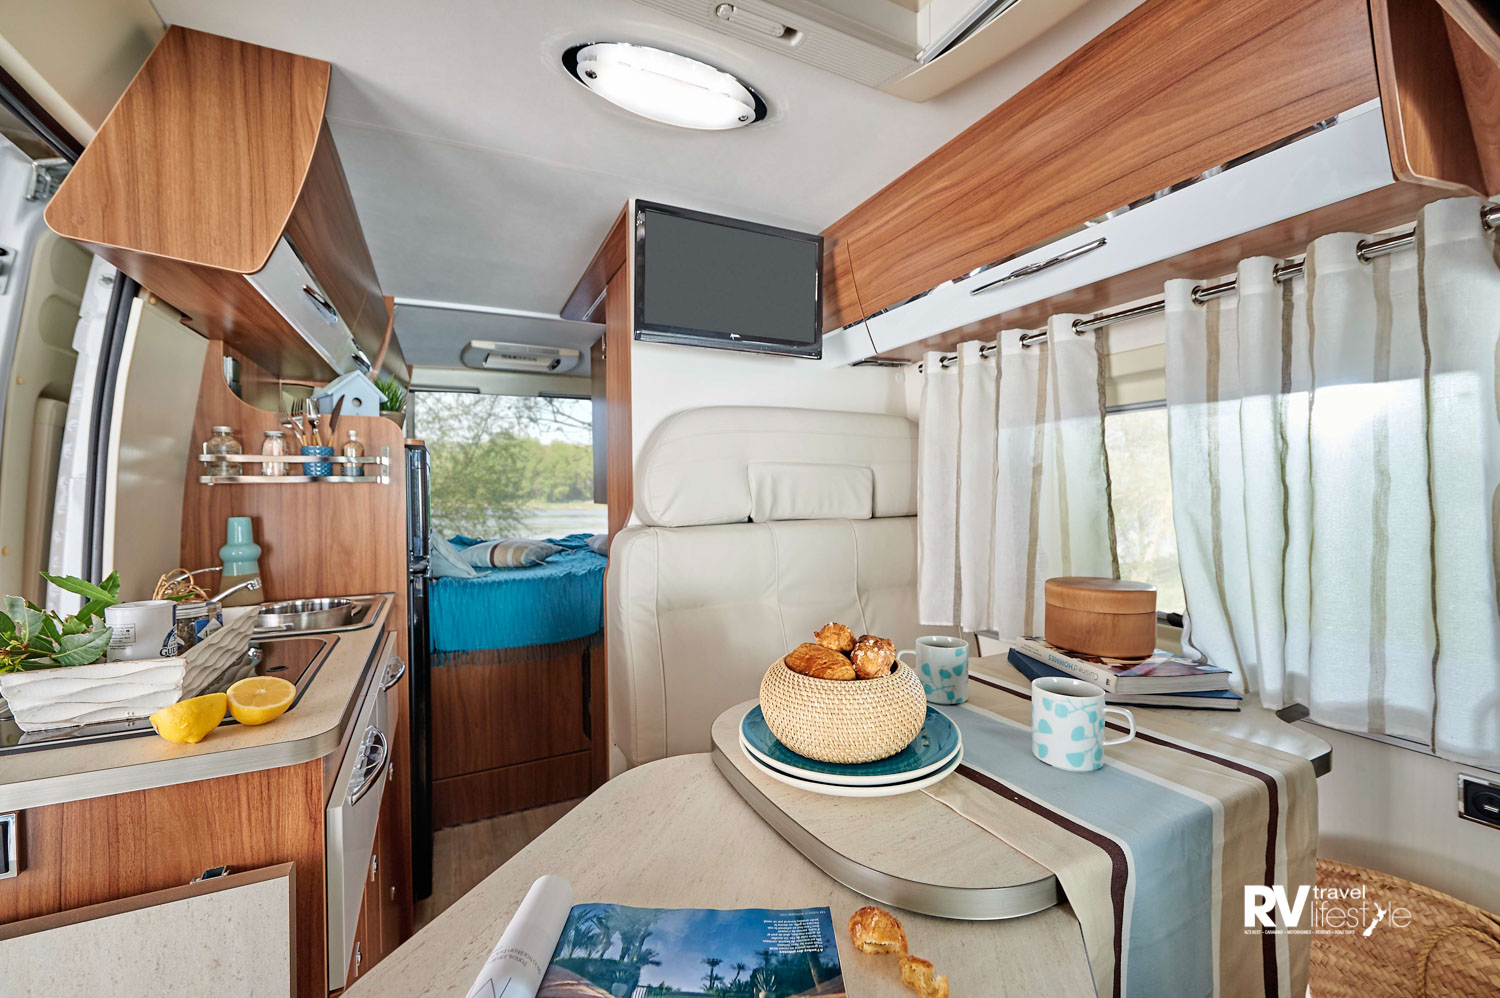 The Foxy camper is fantastic, can't wait to check this model out